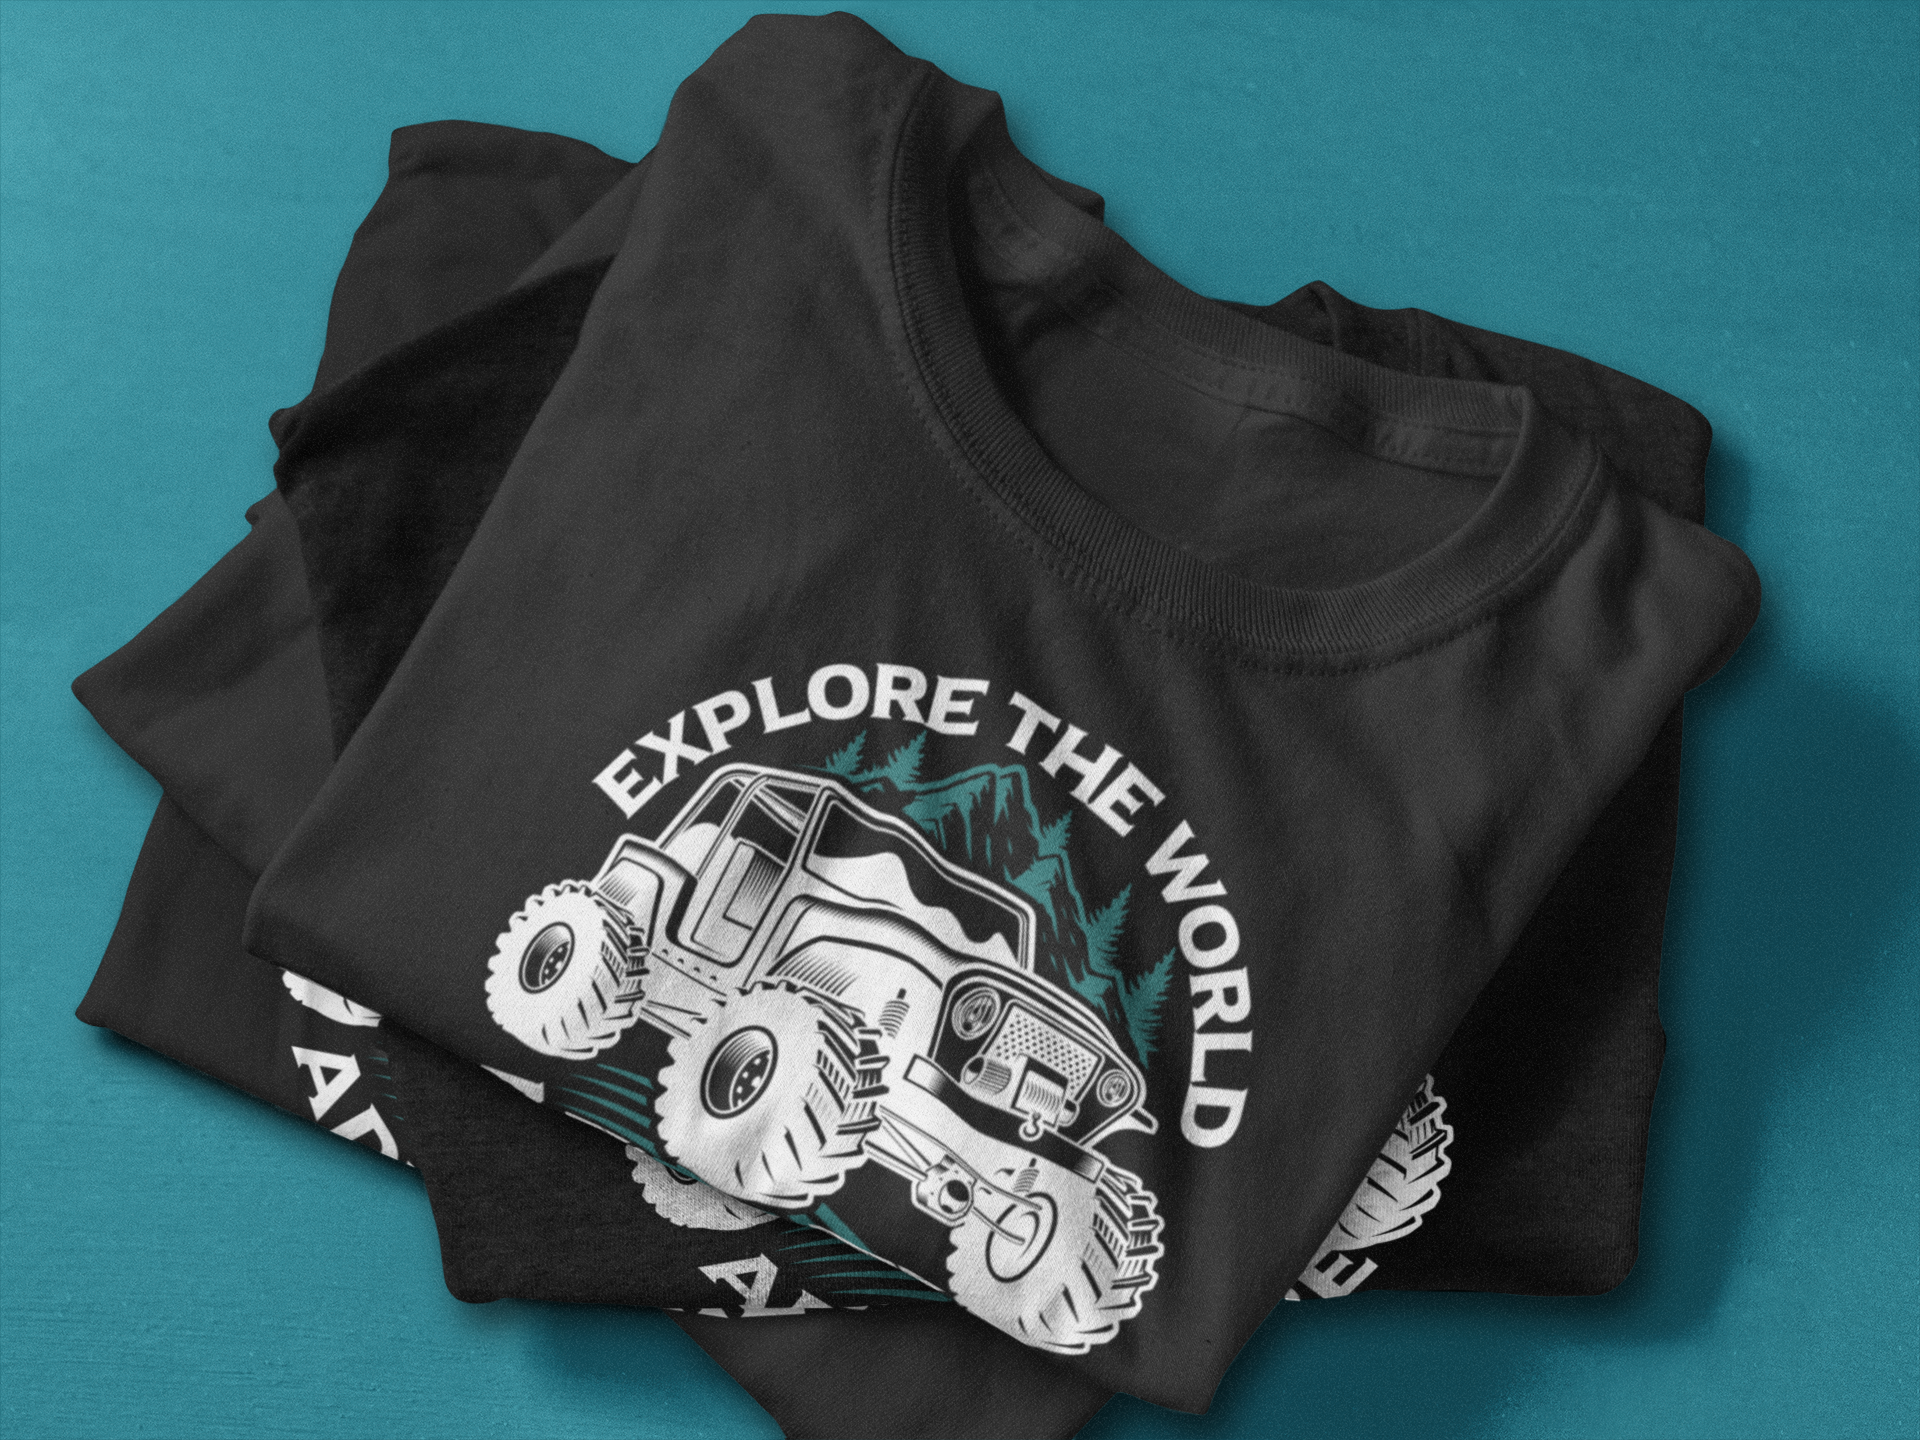 t-shirt-mockup-featuring-a-stack-of-folded-t-shirts-6402a